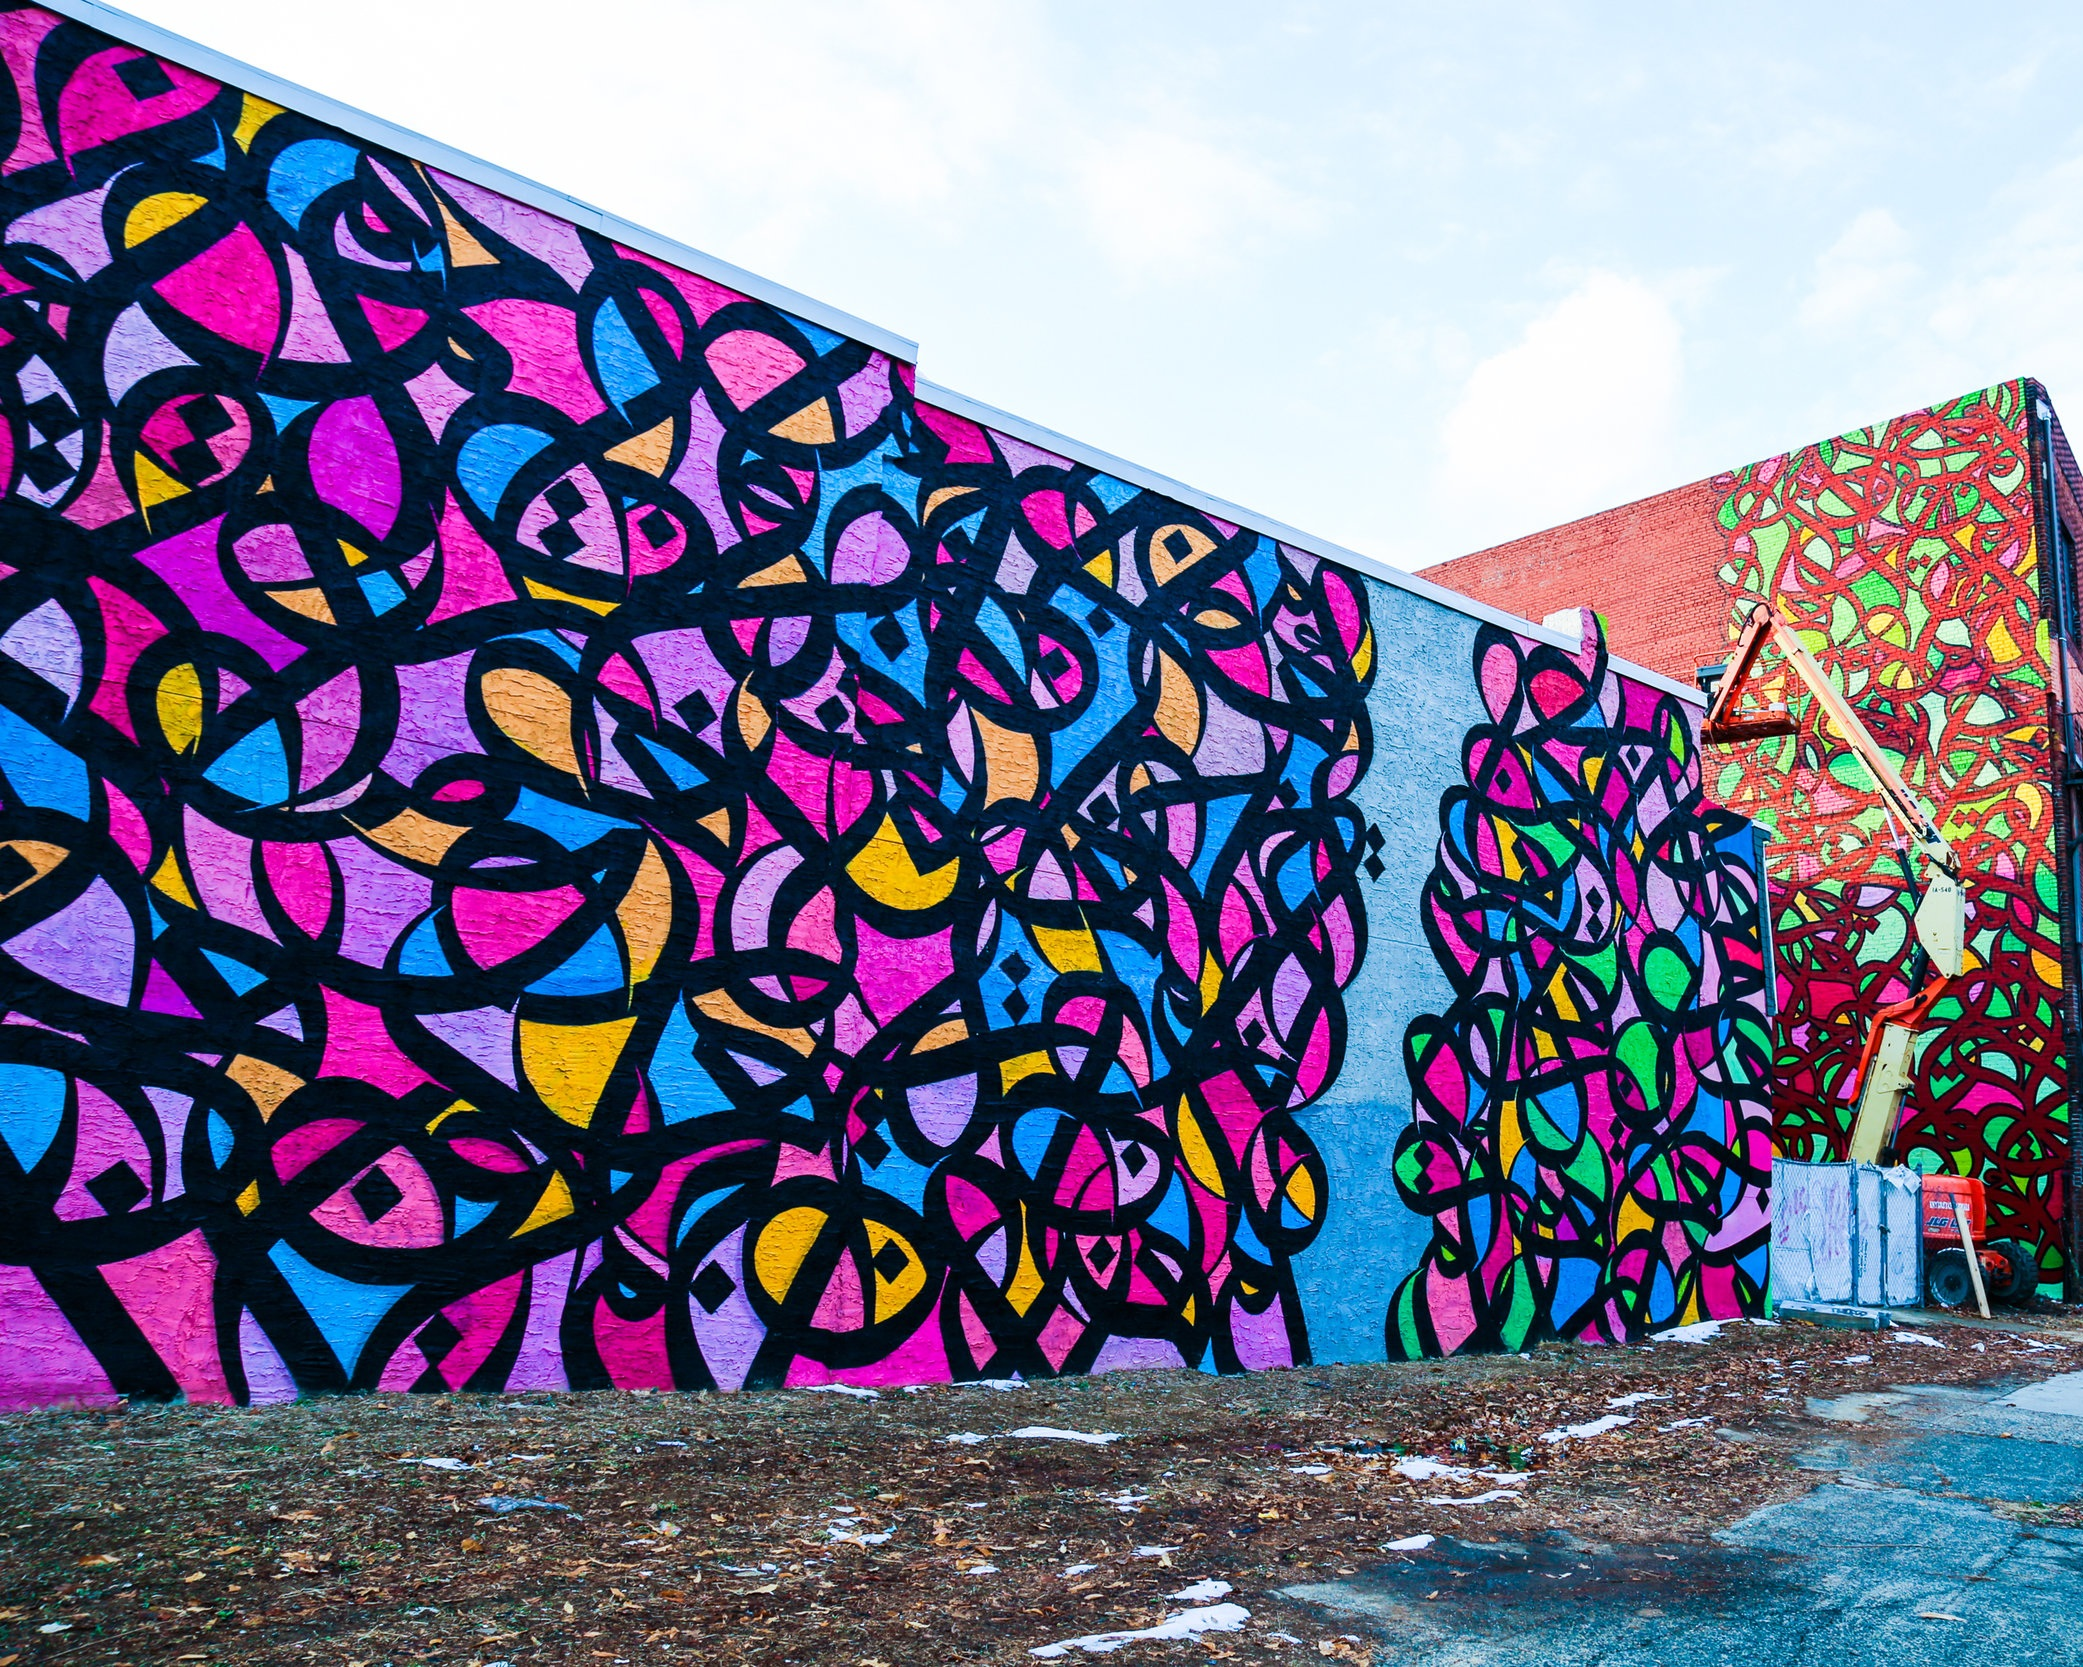 2017 Philly Public Art -